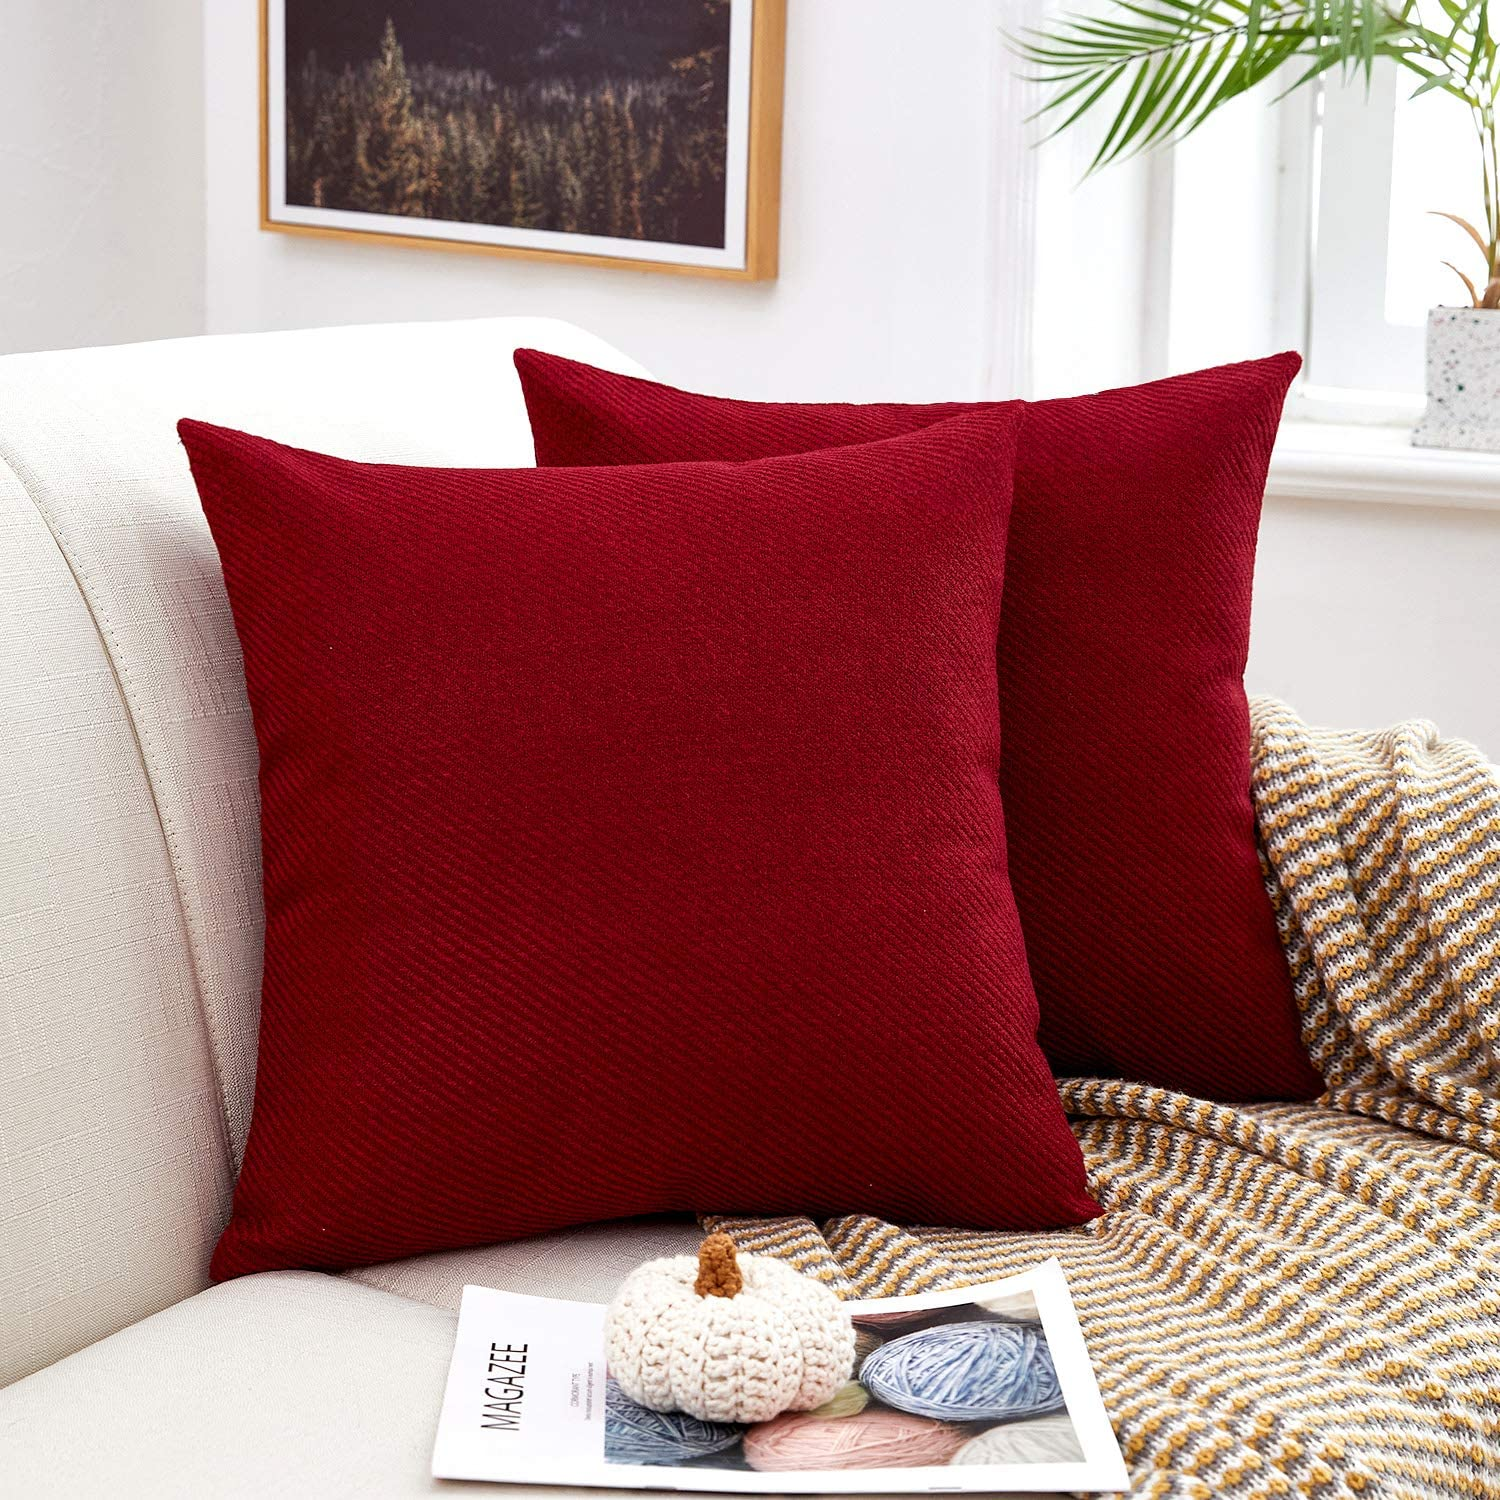 MERNETTE Pack of 2, Chenille Soft Decorative Square Throw Pillow Cover Cushion Covers Pillowcase, Home Decor Decorations for Sofa Couch Bed Chair 18x18 Inch/45x45 cm (Burgundy)